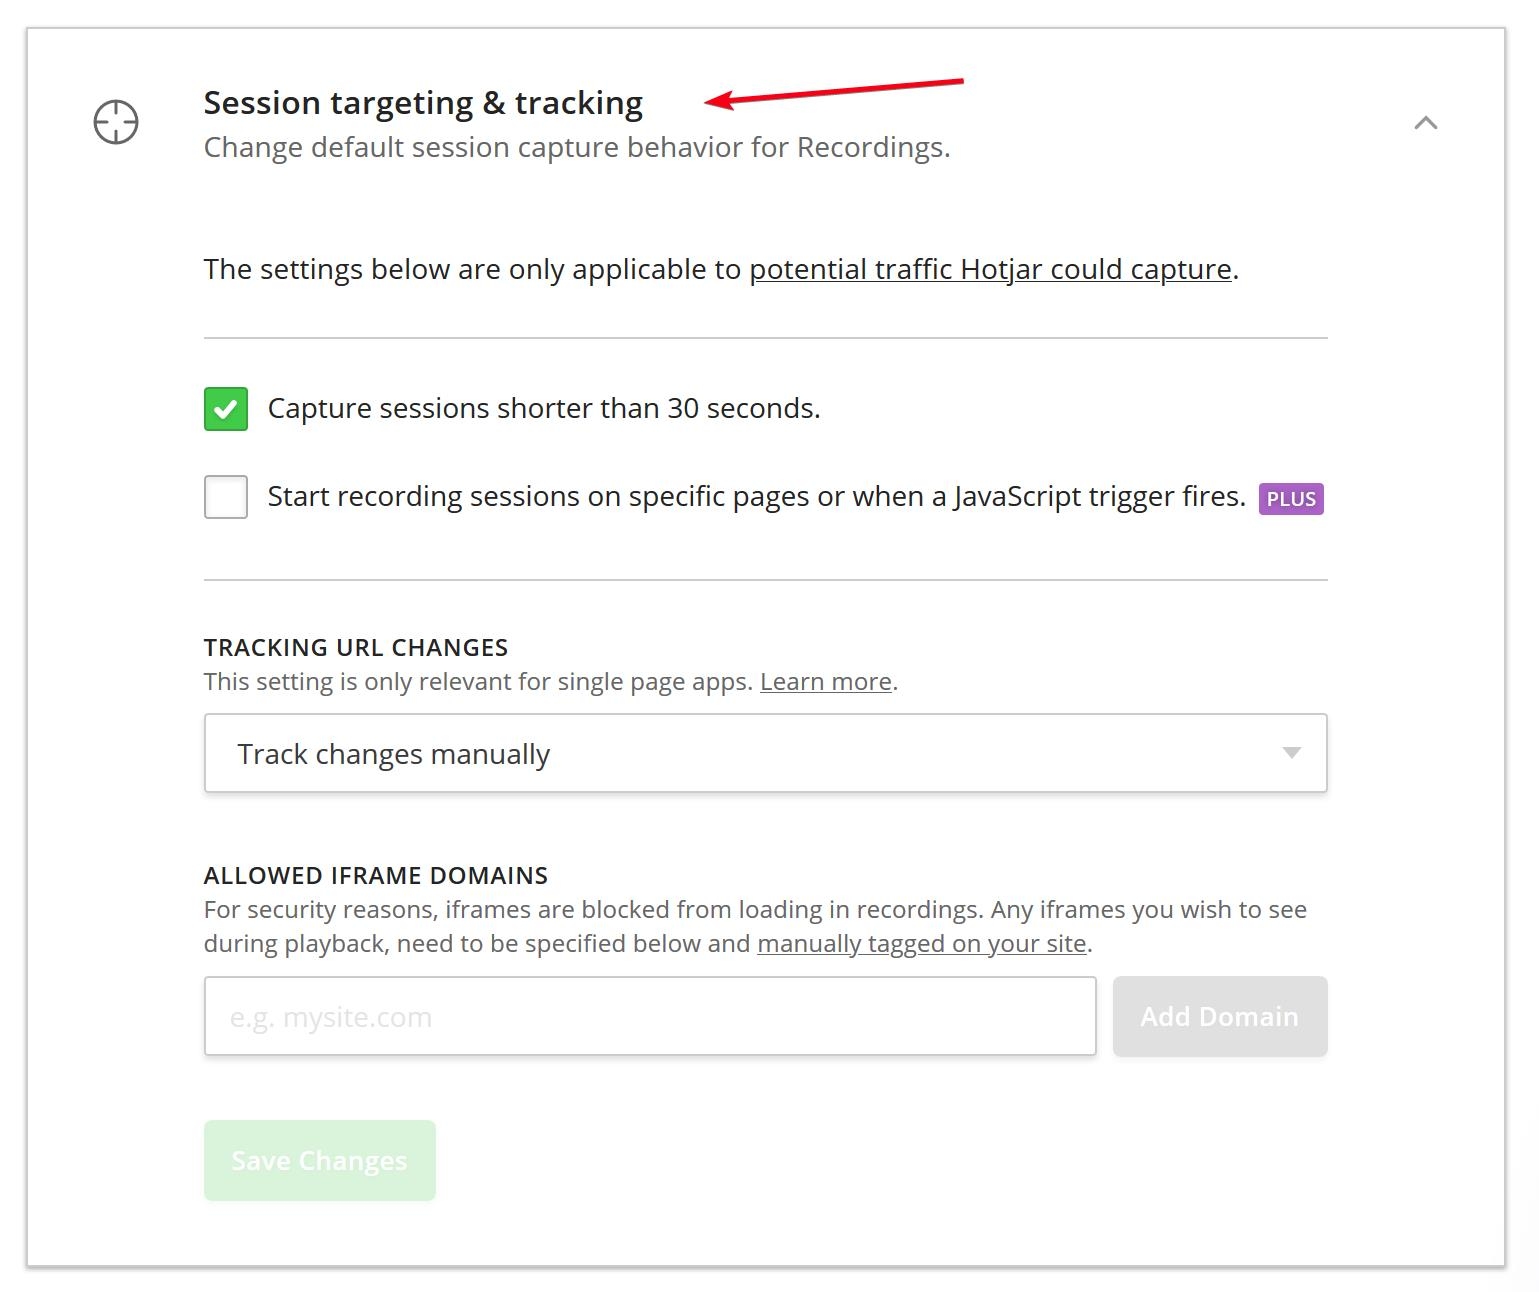 Session targeting and tracking is the 3rd section down in the Site settings section list.